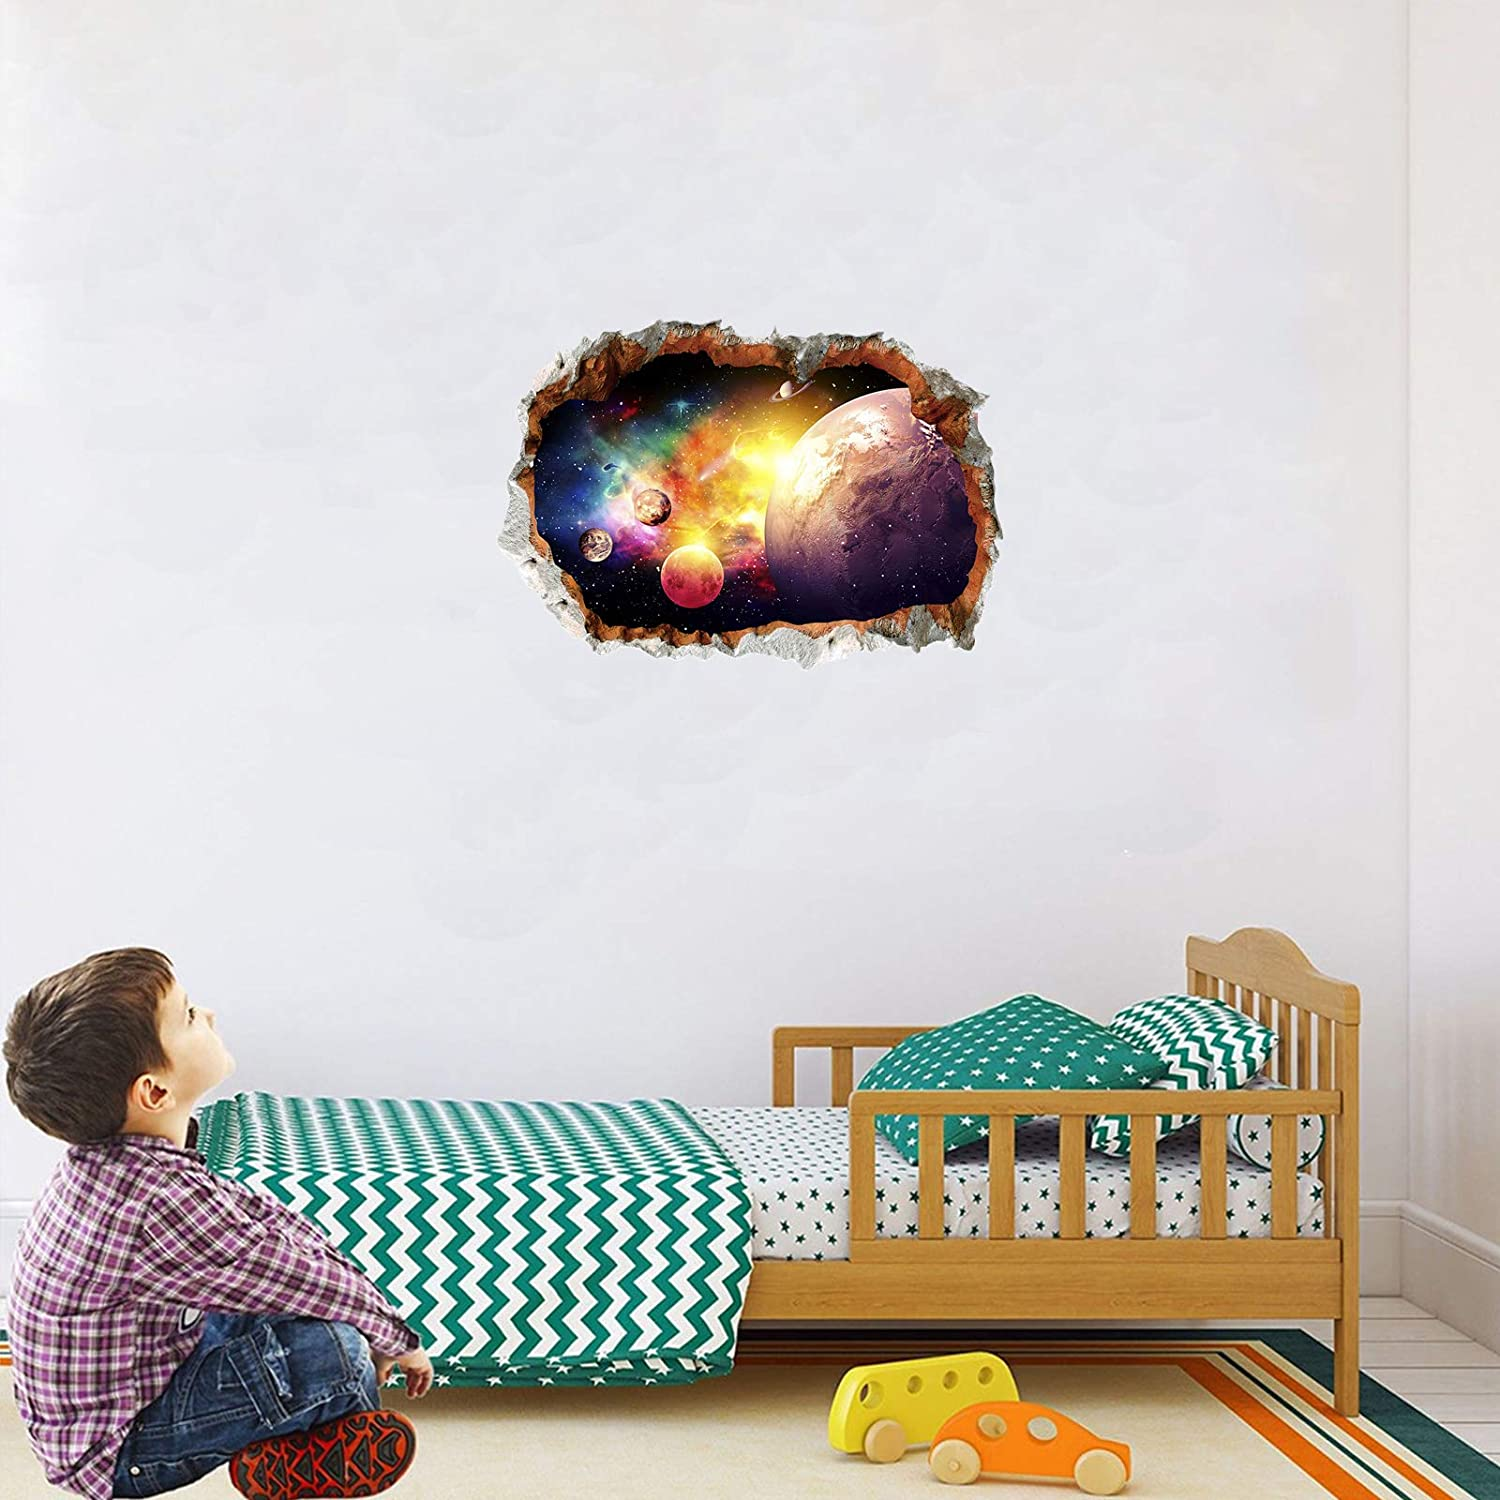 3 Pcs Universe Window Wall Stickers 3D Planet Wall Decals Galaxy Outer Space Star Wall Murals Wall Art Decorative Sticker for Kids Home Living Room Bedroom Nursery Removable Party Decor Decorations